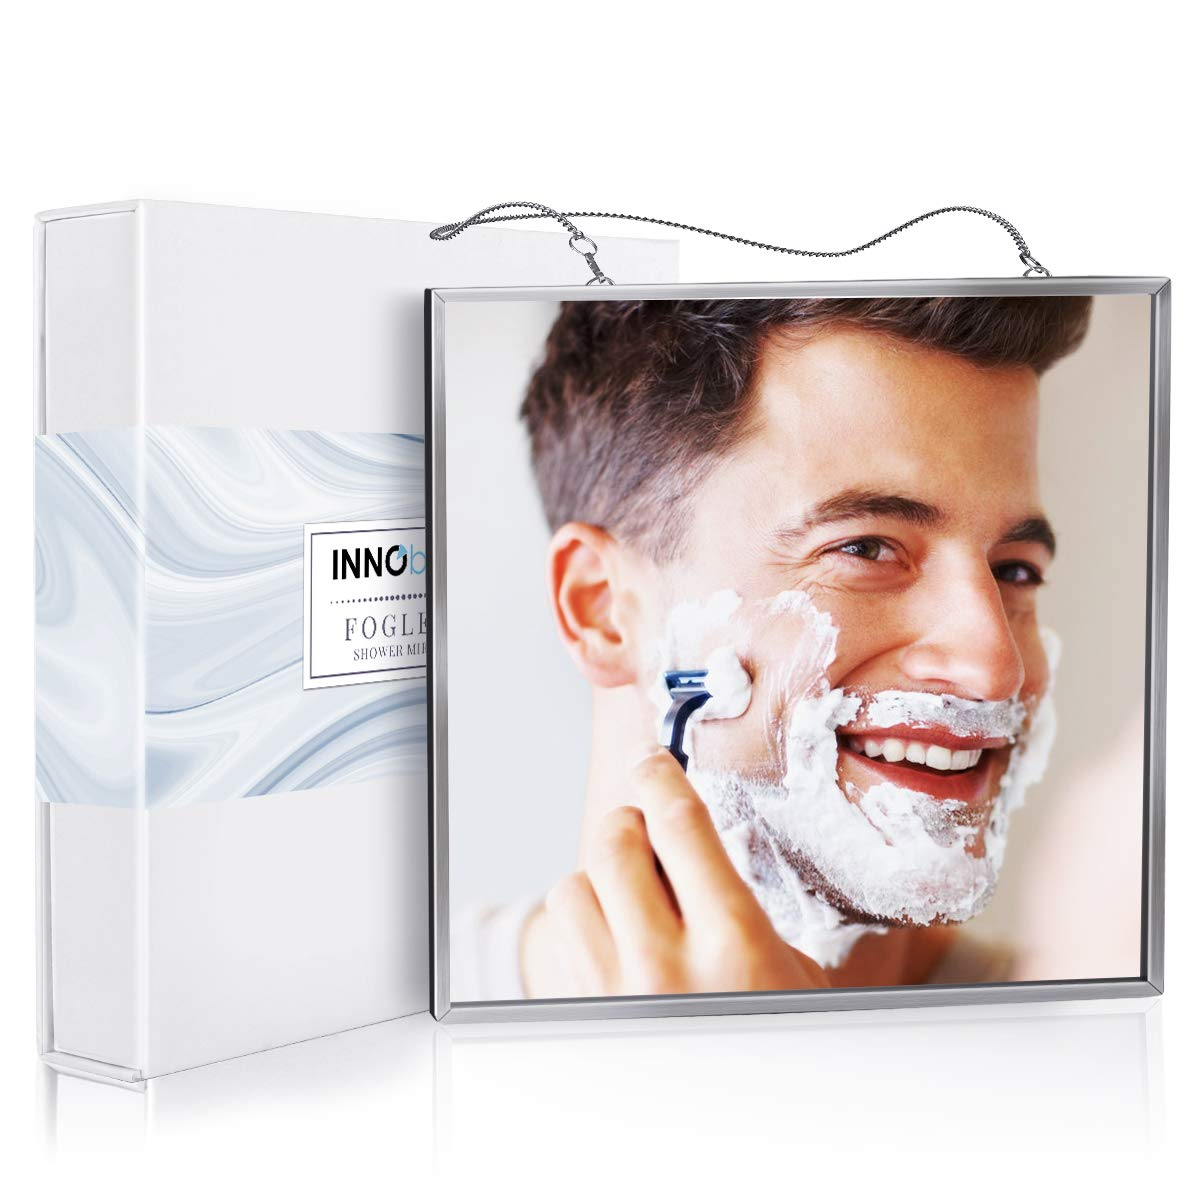 INNObeta Fogless Shower Mirror for Shaving /& Facial Cleansing 17cm x 17cm Stainless Steel Frame Easy to Use 2 Chains included Anti-fog Shower Mirror with larger size Shatterproof Glass